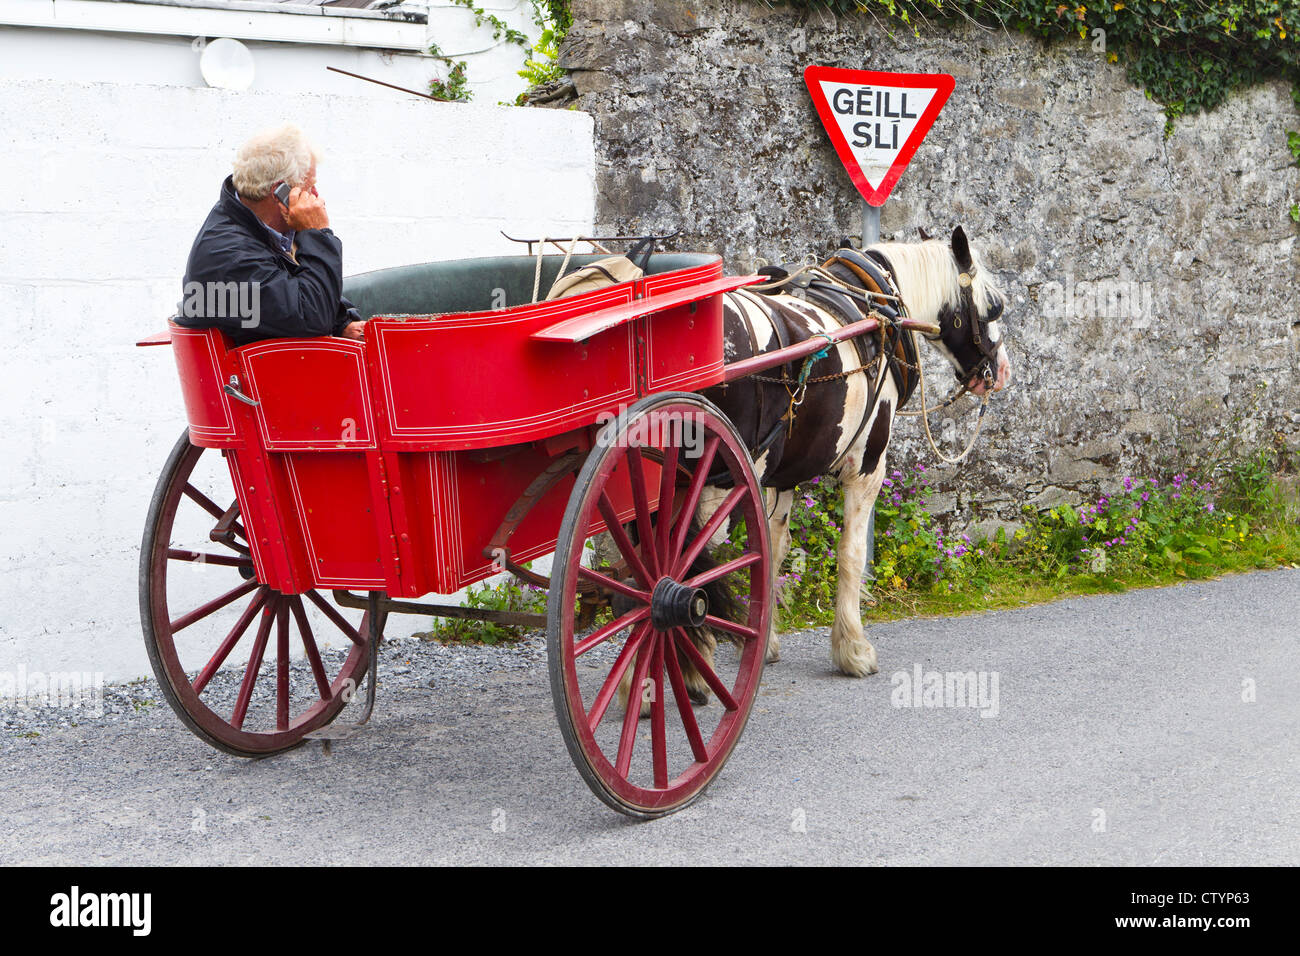 harvey in pony and trap. horse and cart - Stock Image